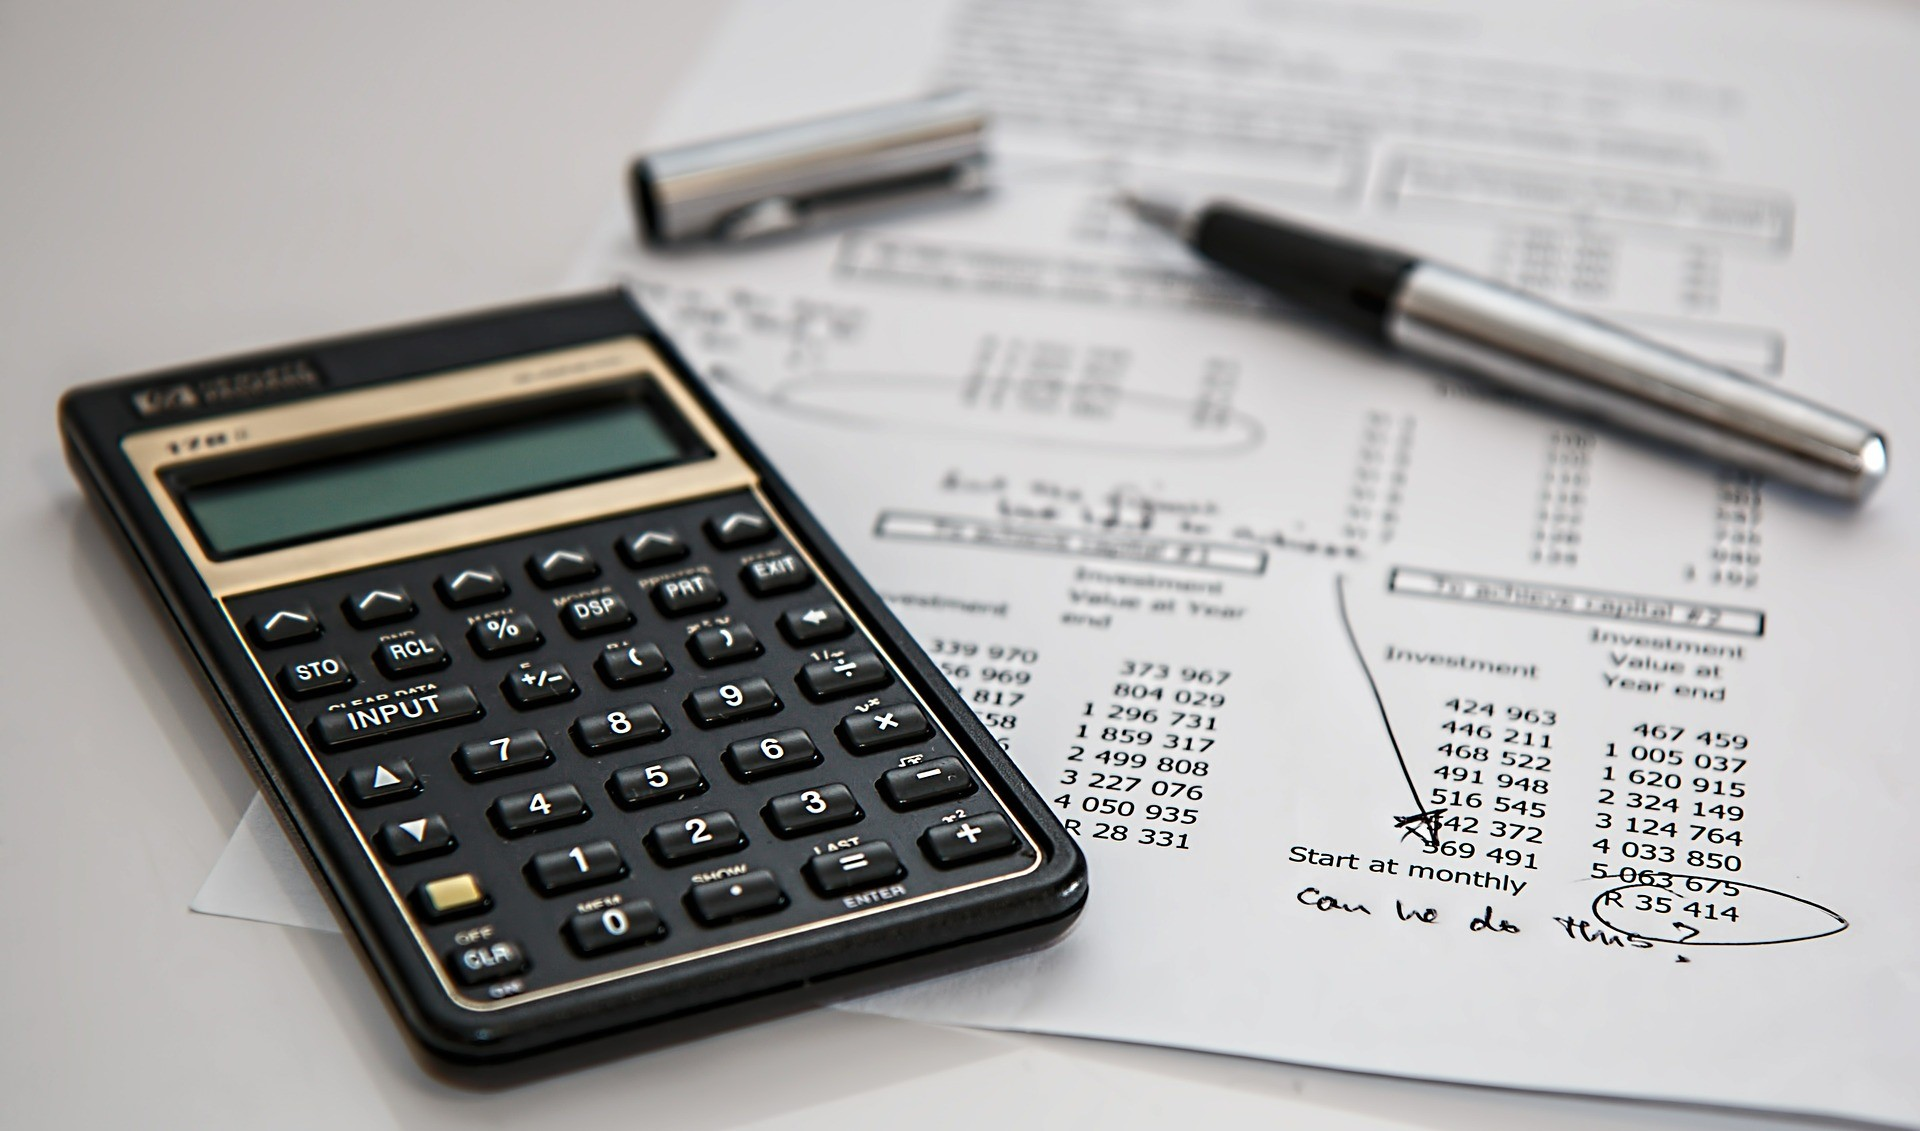 How to Keep on Top of Your Businesses Accounting - calculator and accounts image